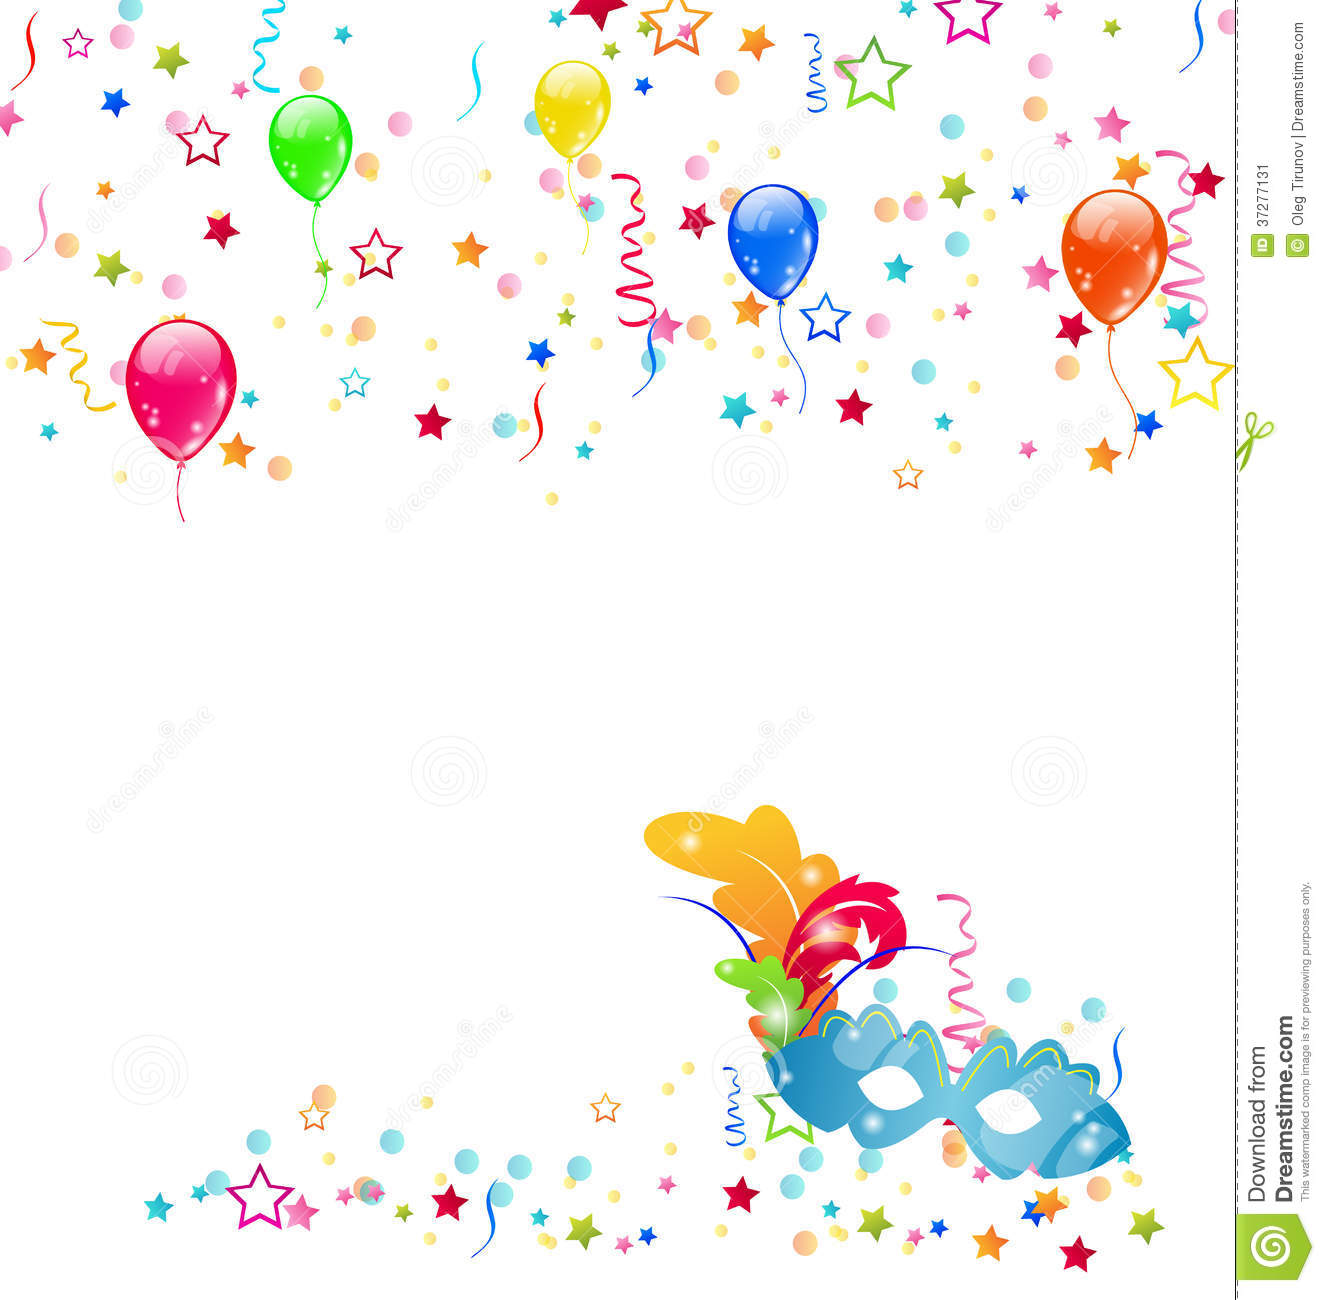 Carnival Background With Mask, Confetti, Balloons Stock Image - Image ...